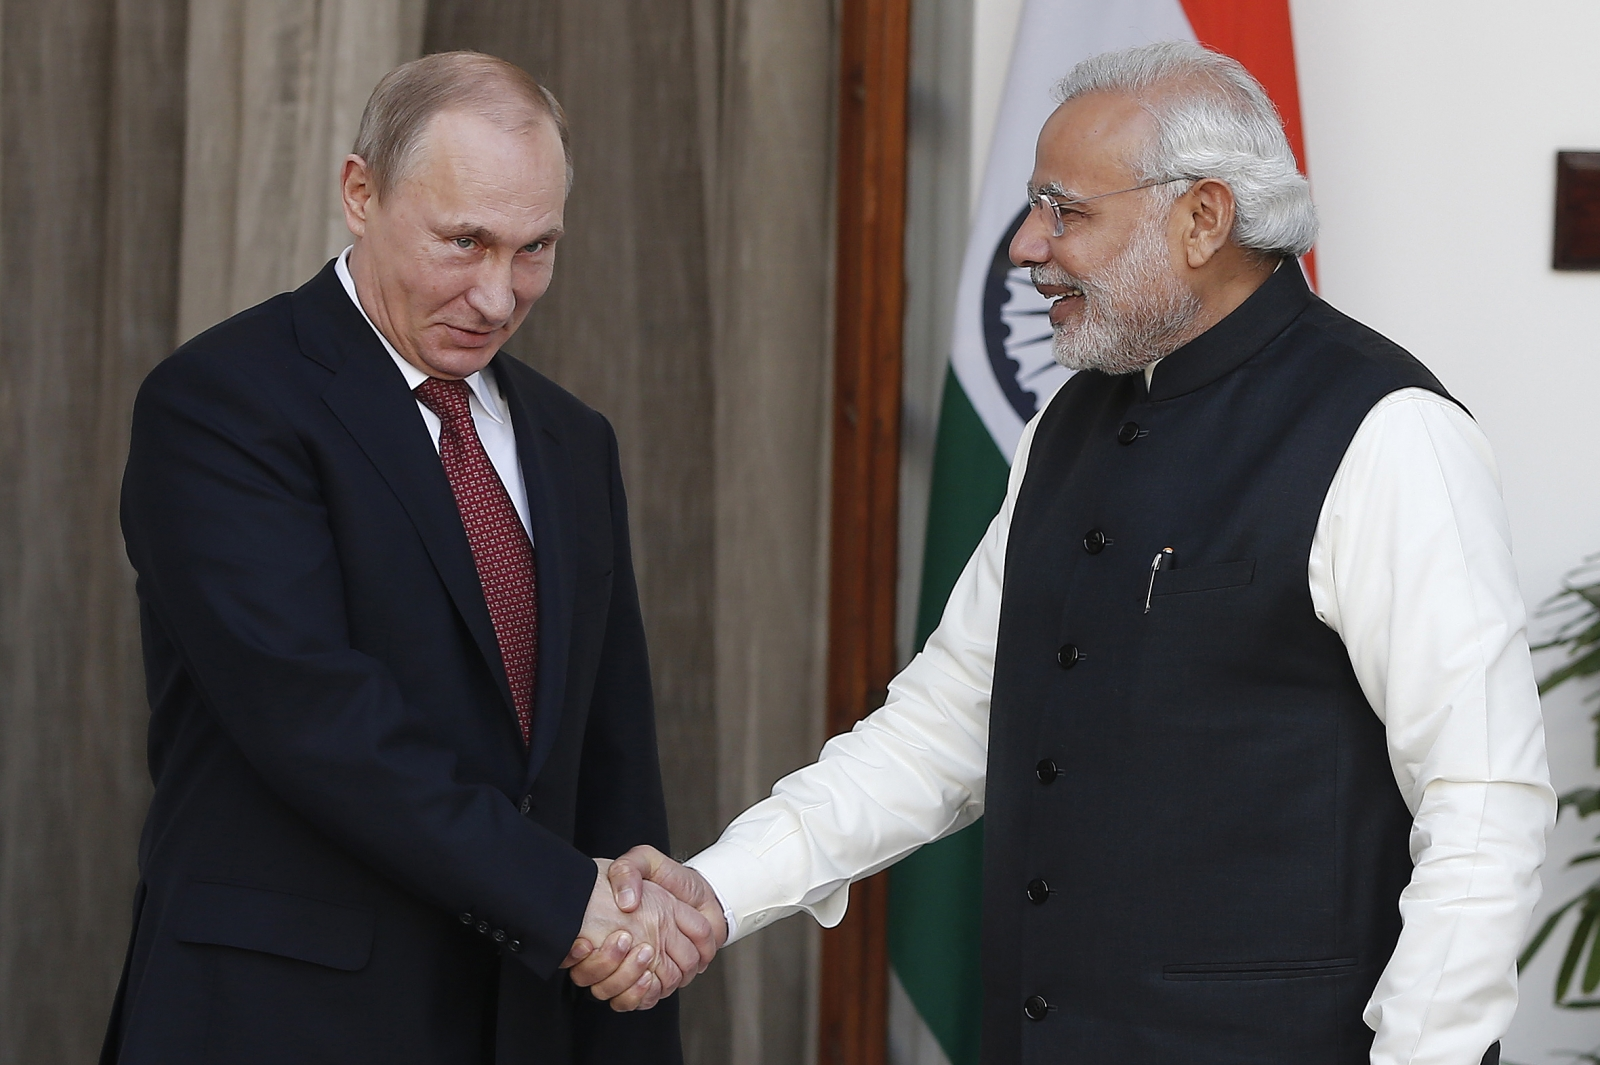 Russian President Vladimir Putin (L) shakes hands with India's Prime Minister Narendra Modi during a photo opportunity ahead of their meeting at Hyderabad House in New Delhi